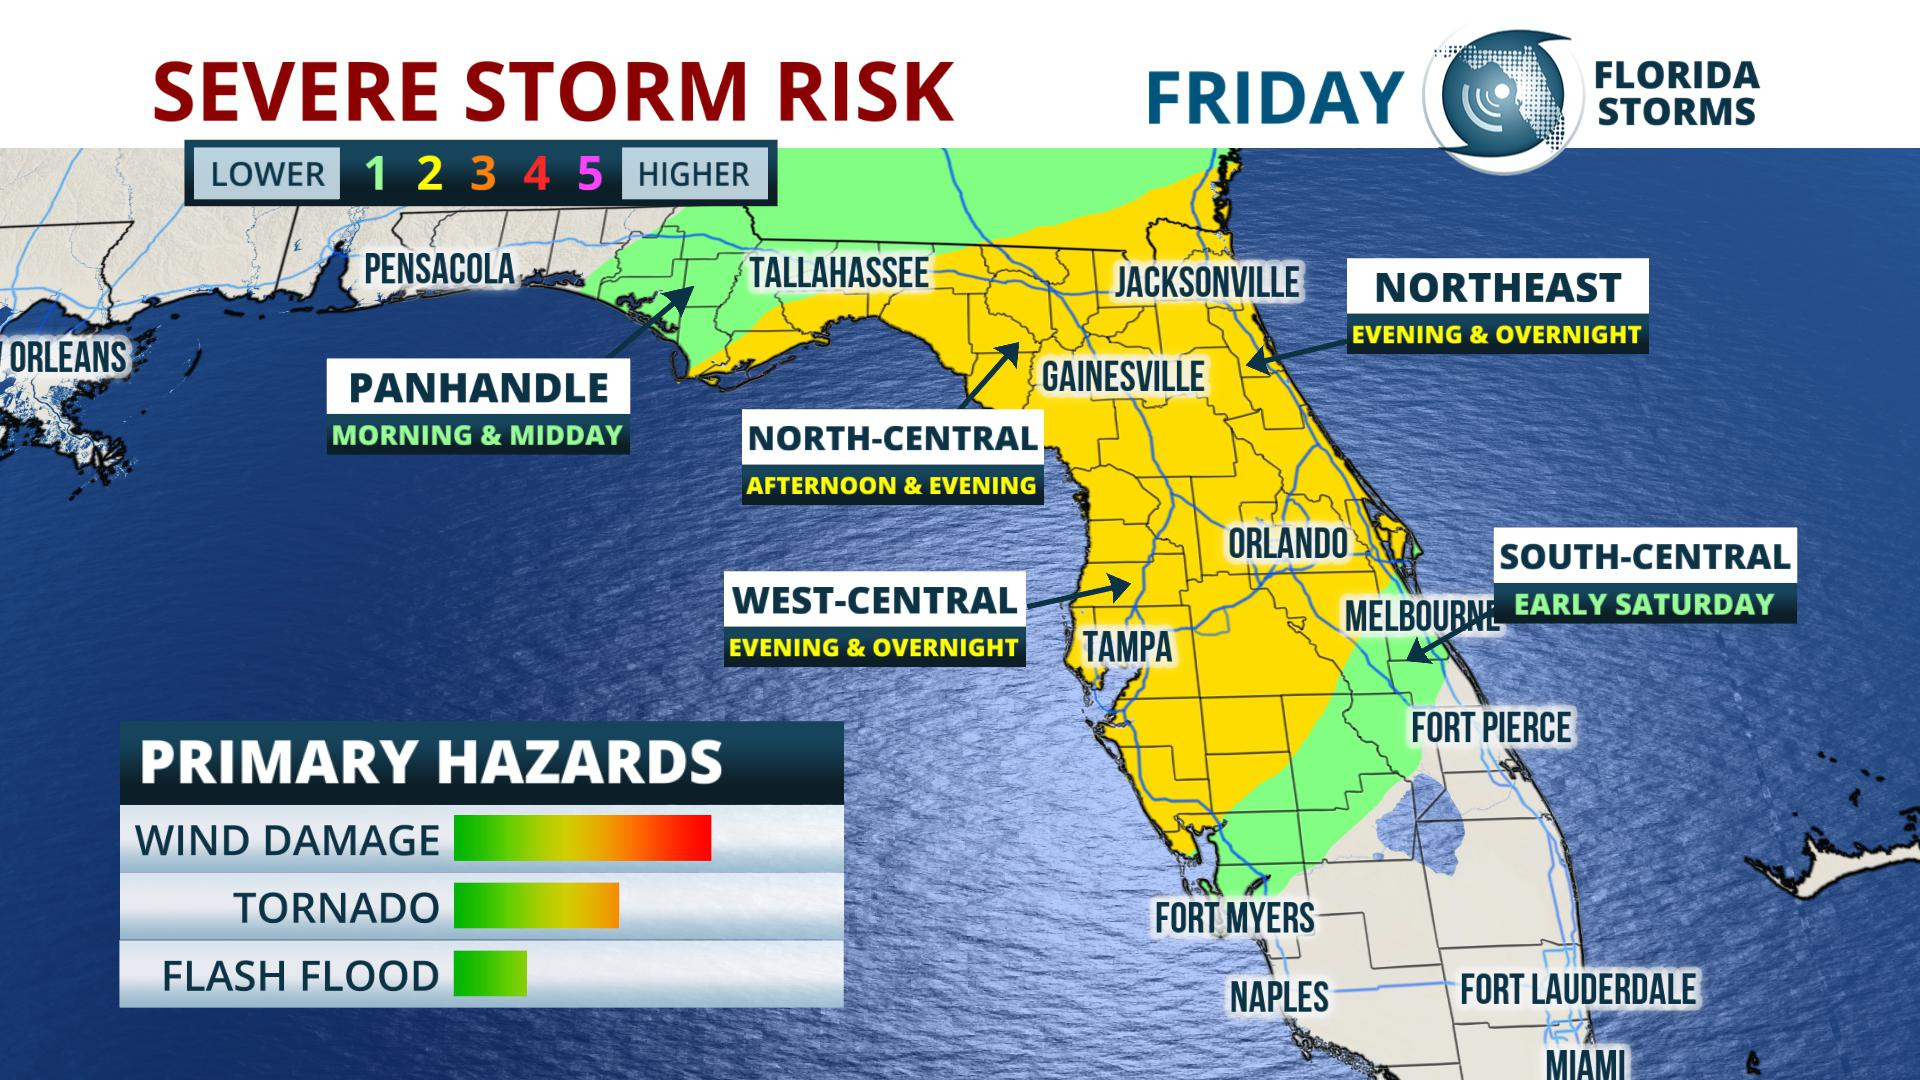 Tornado, Flood And Wind Damage Risk In Florida Friday - Florida Storms - Flood Maps Gainesville Florida